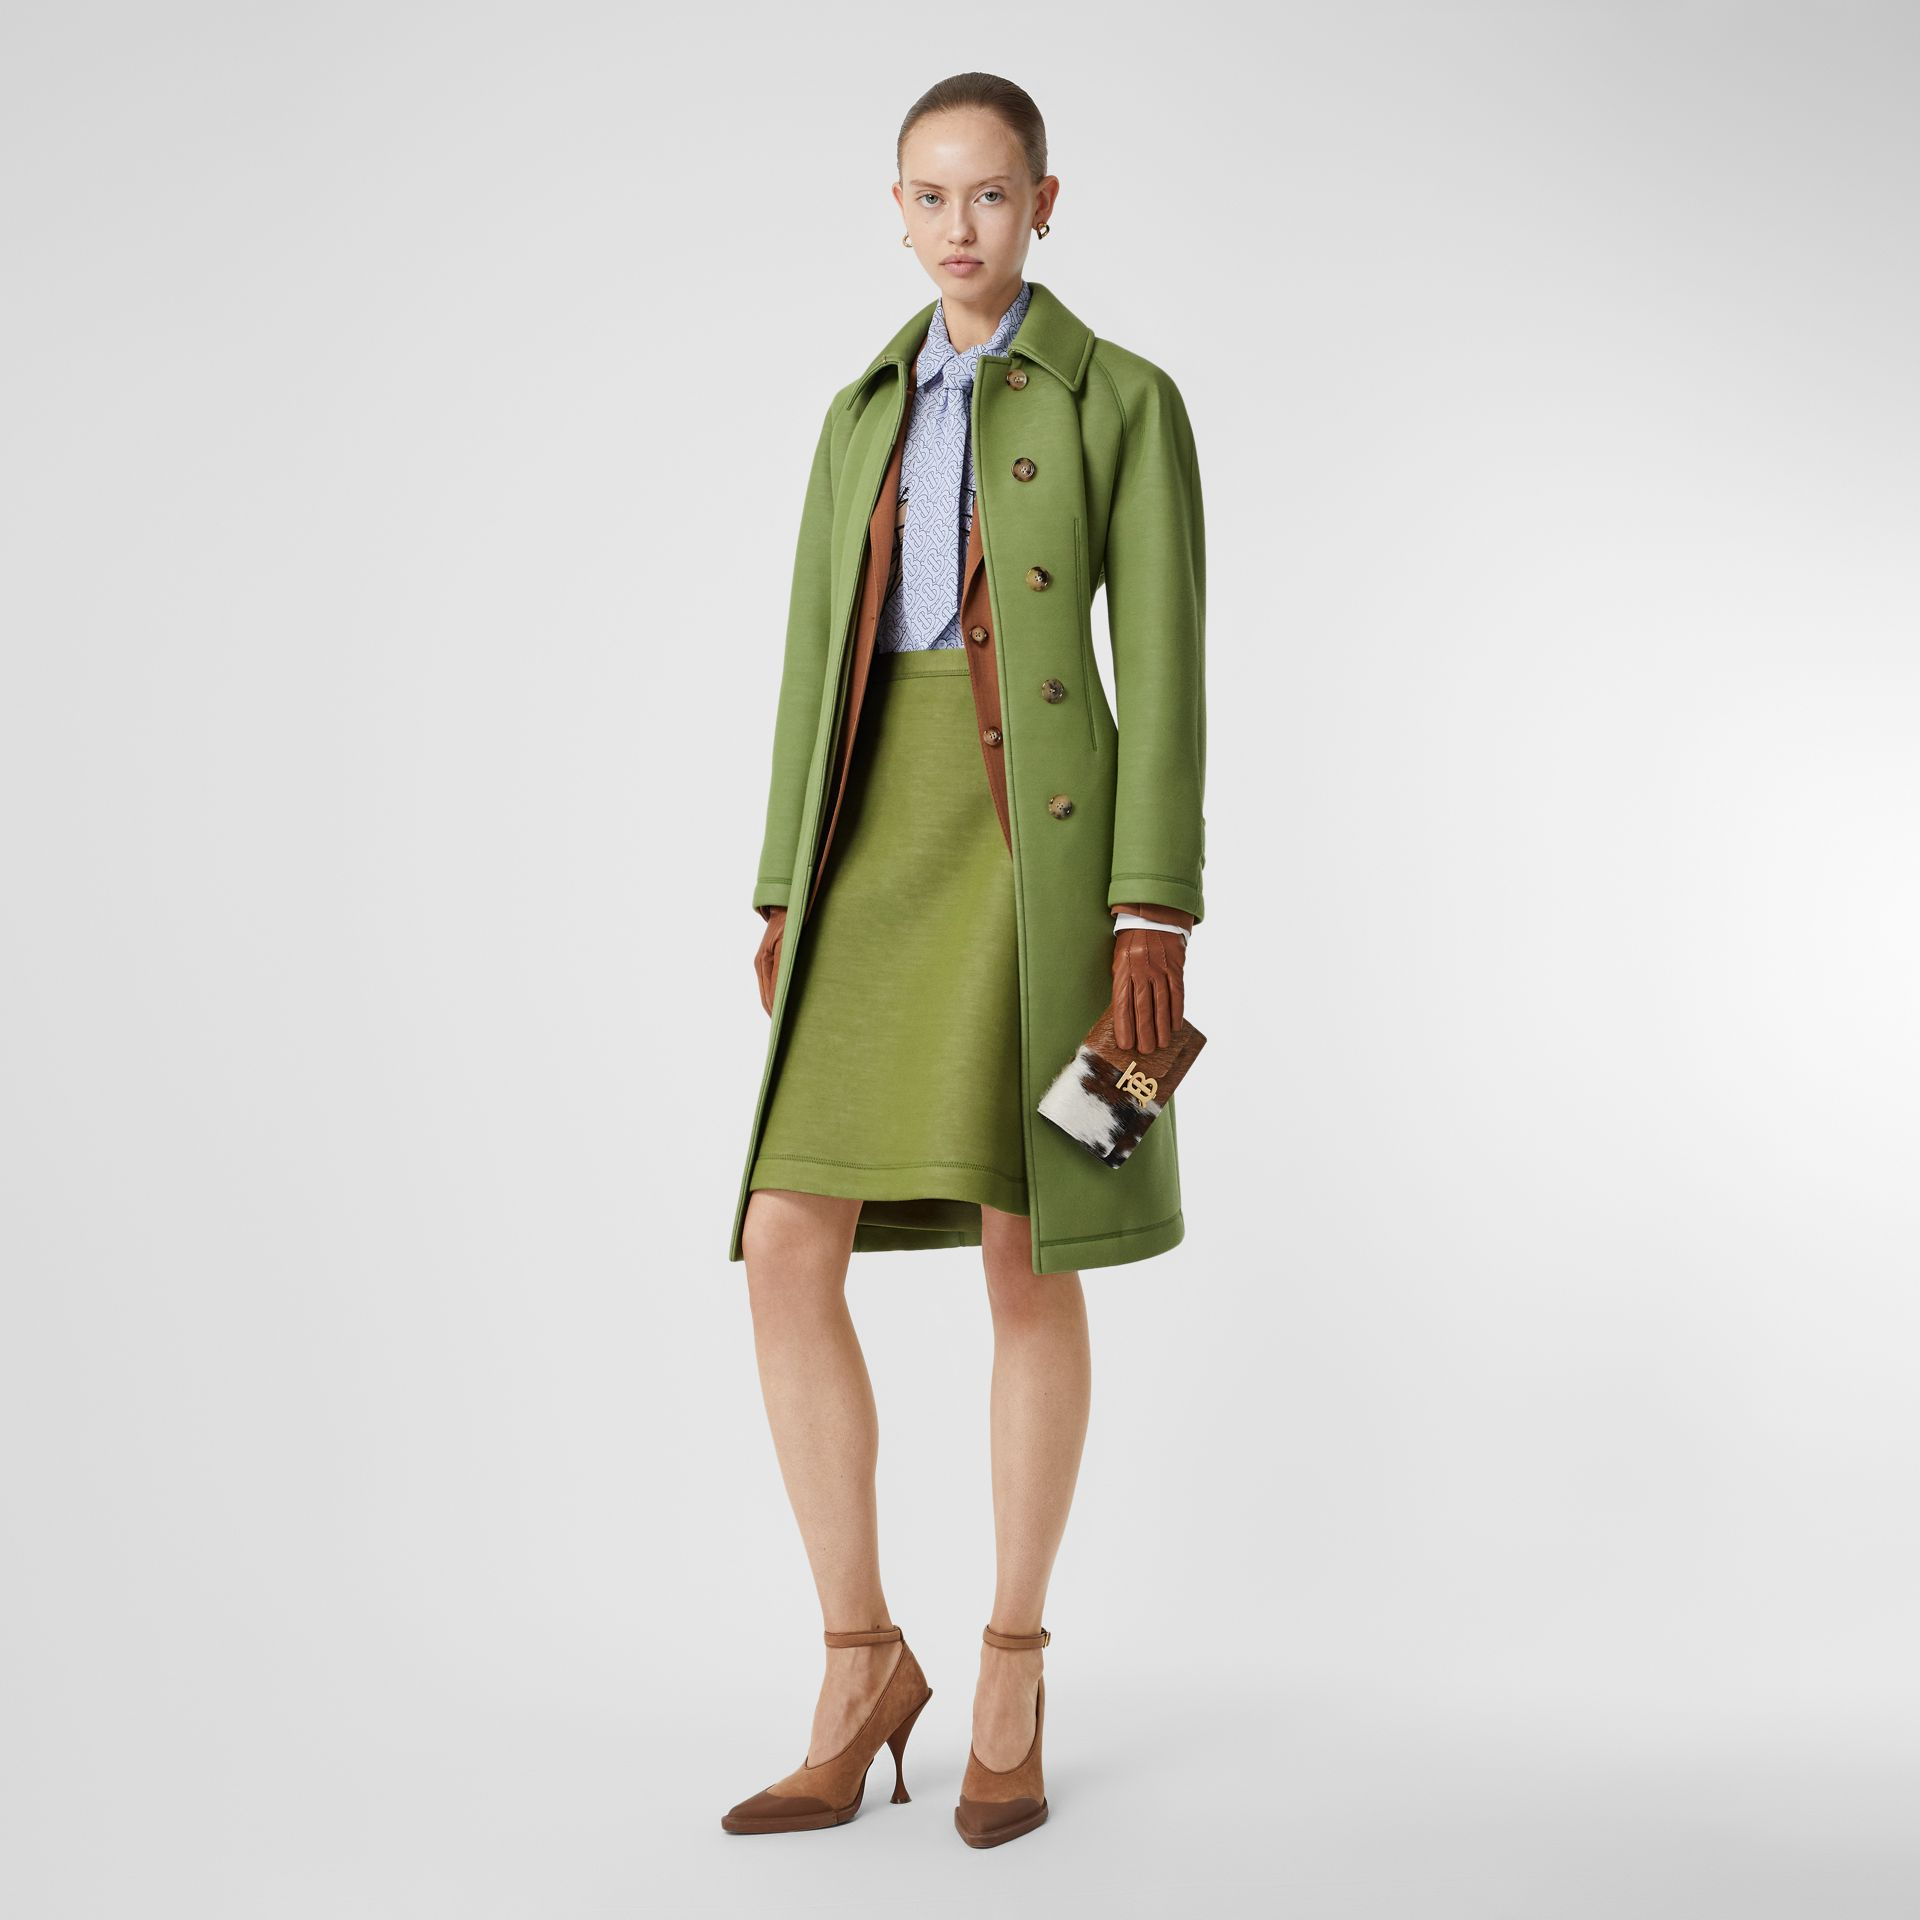 Double-faced Neoprene Skirt in Cedar Green - Women | Burberry United Kingdom - gallery image 4